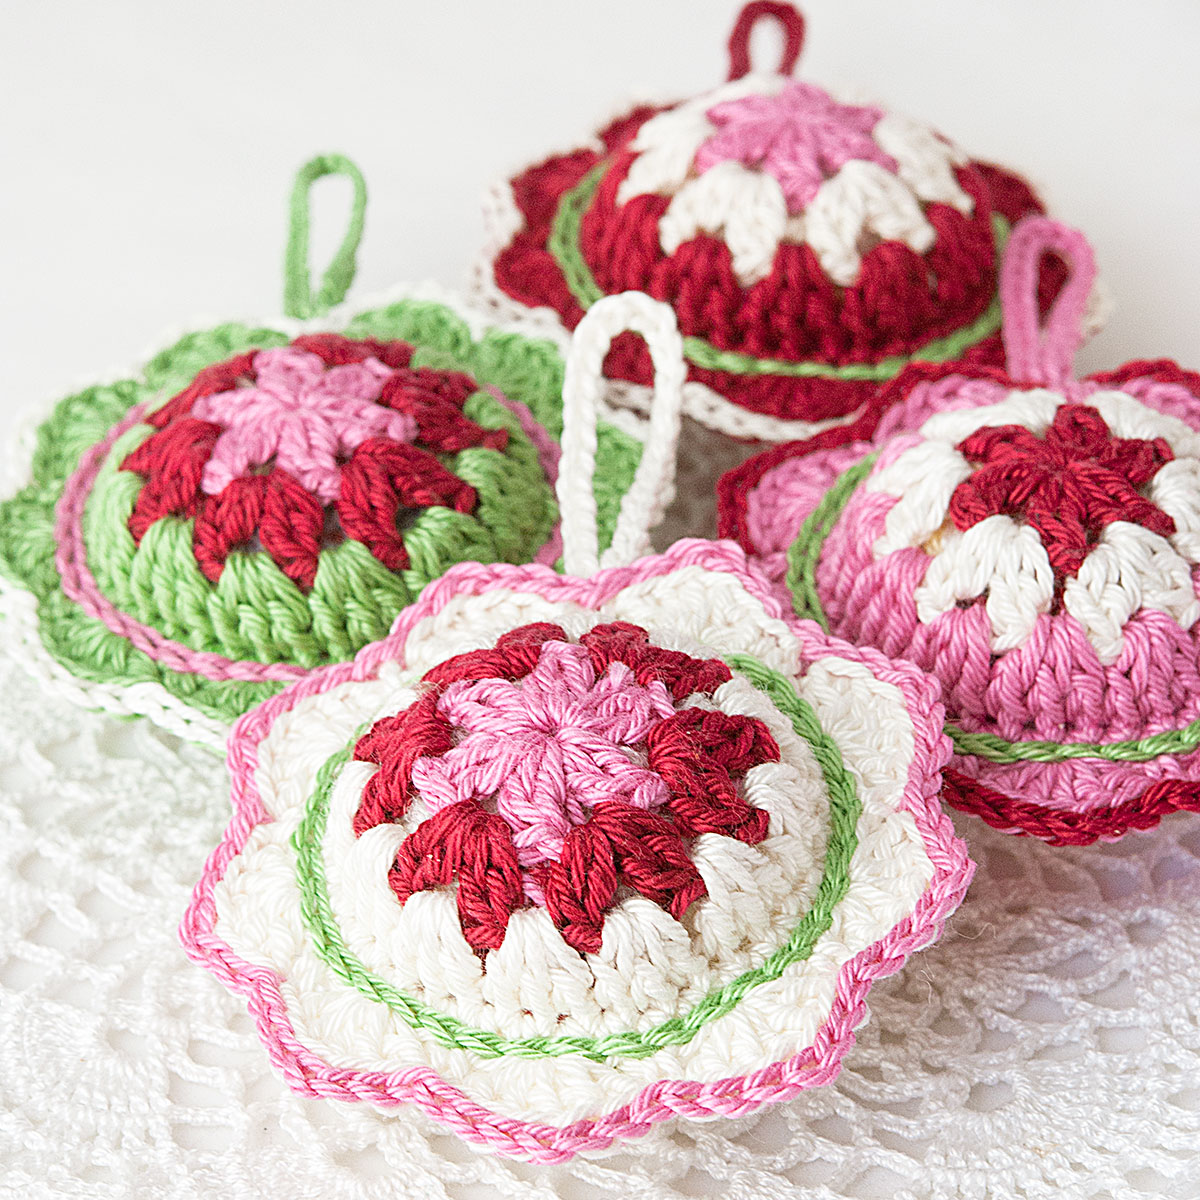 Anabelia craft design: New Christmas crochet ornaments ...